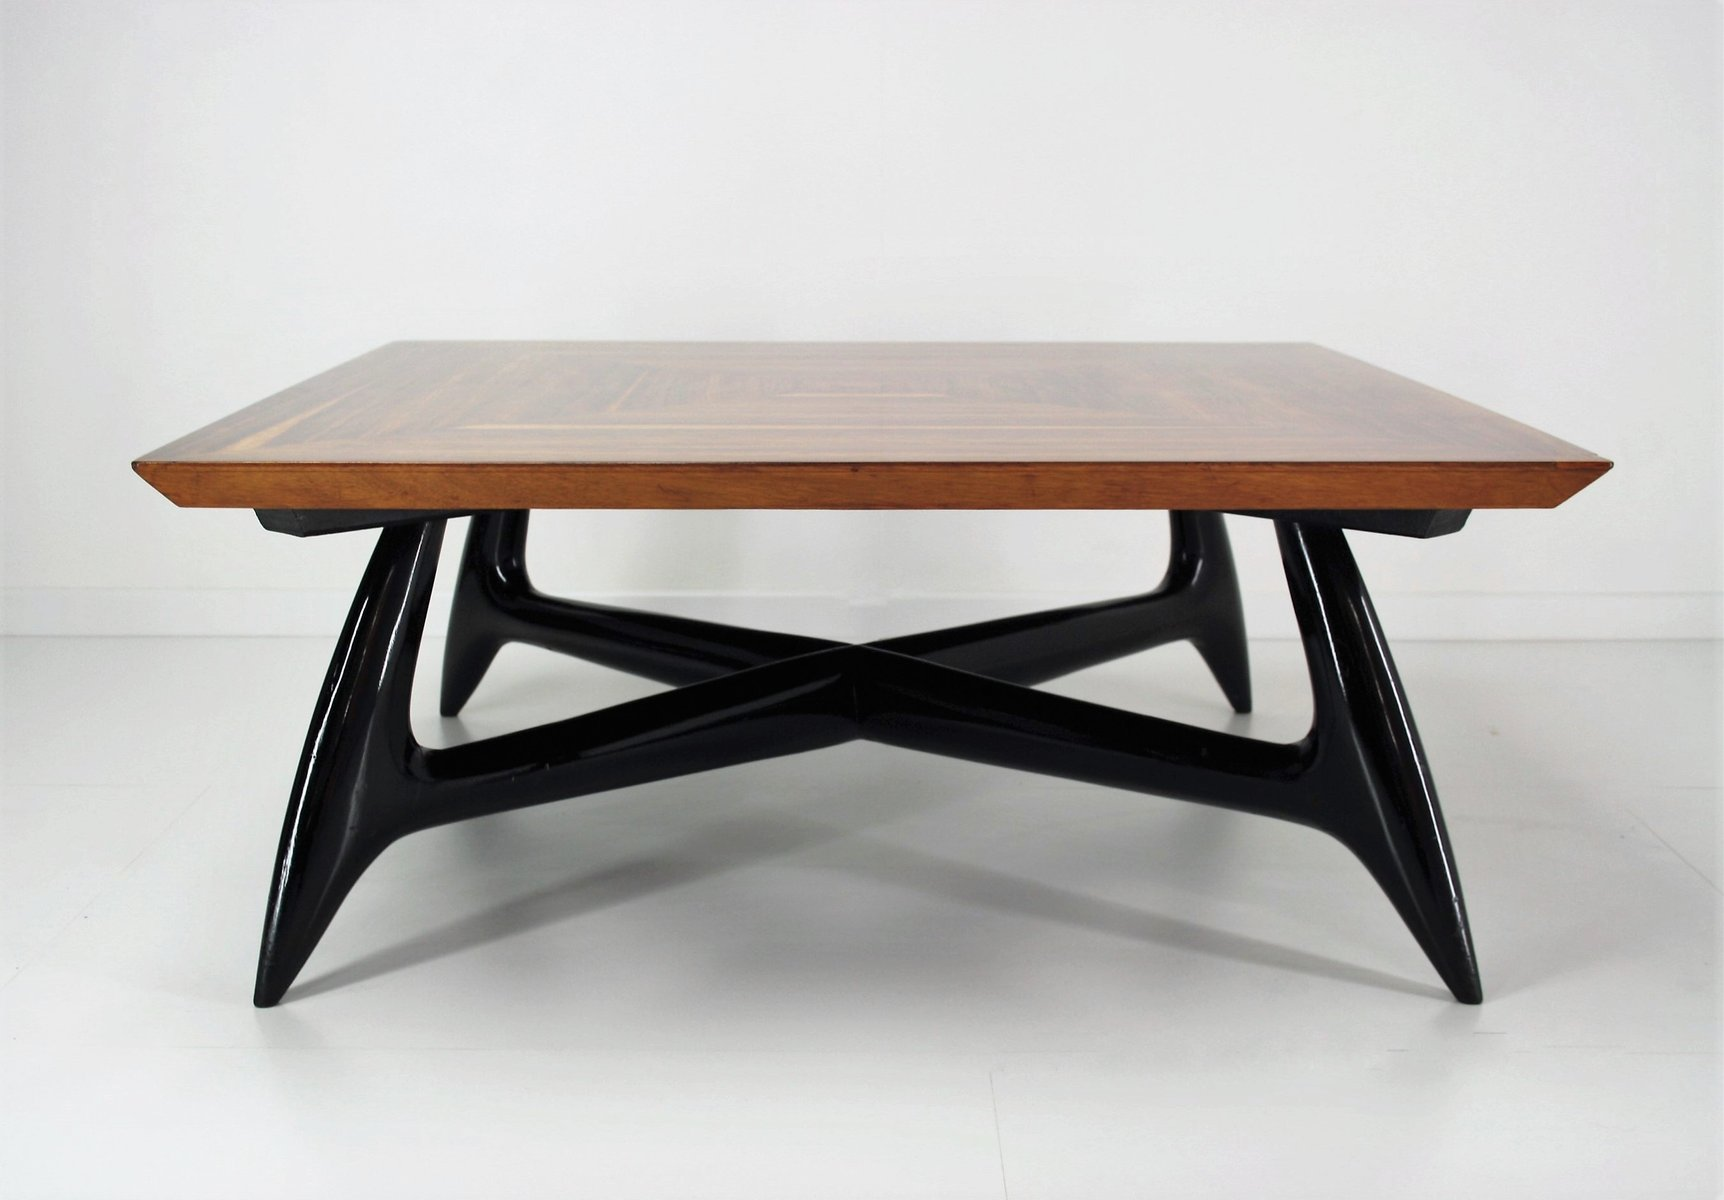 grande table basse de apelli varesio italie 1950s en vente sur pamono. Black Bedroom Furniture Sets. Home Design Ideas